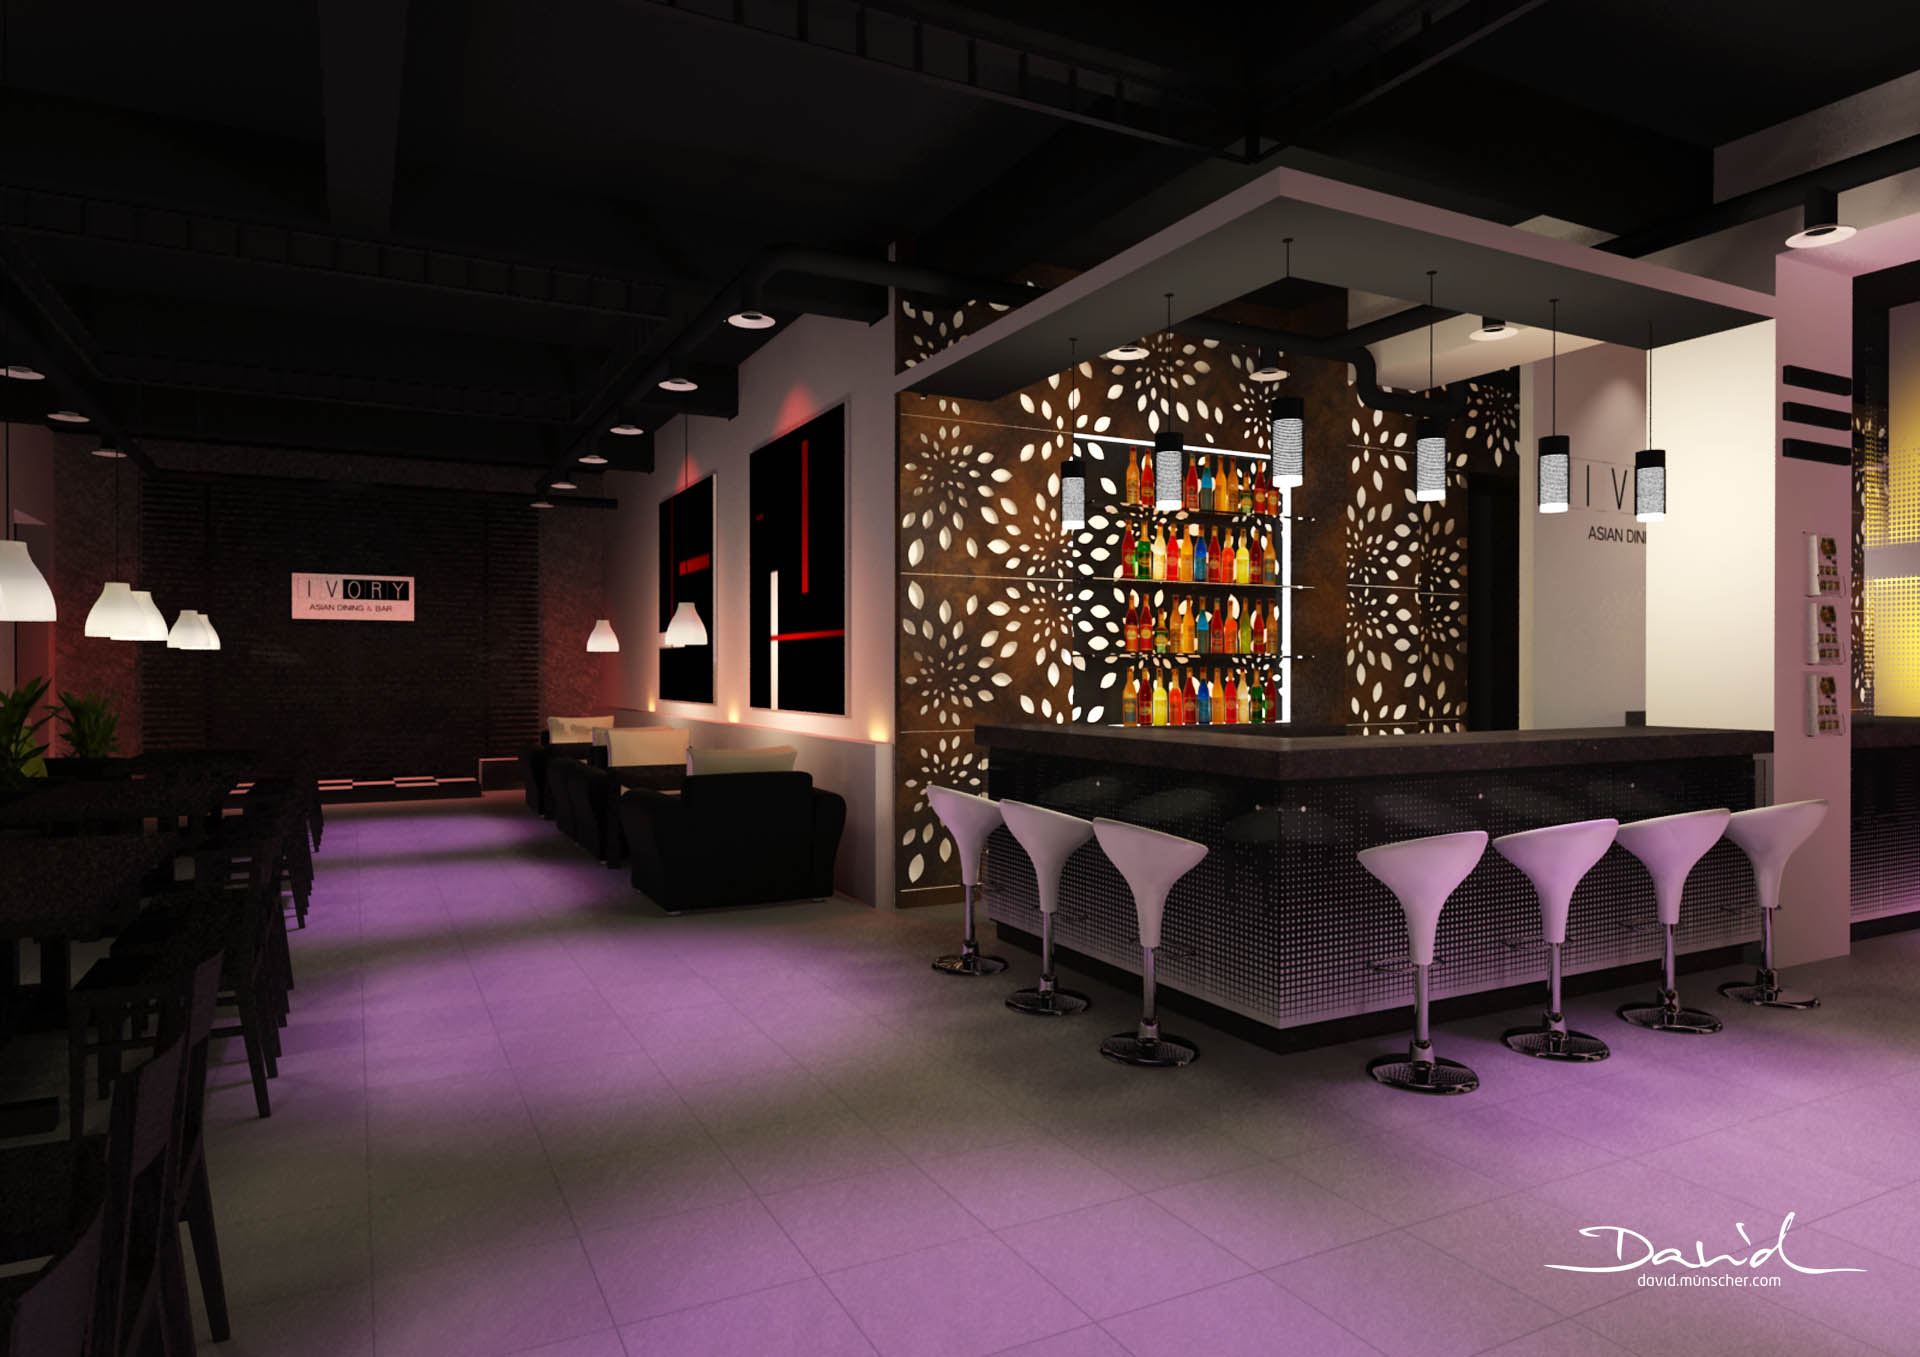 Ivory | Asian Dining & Bar